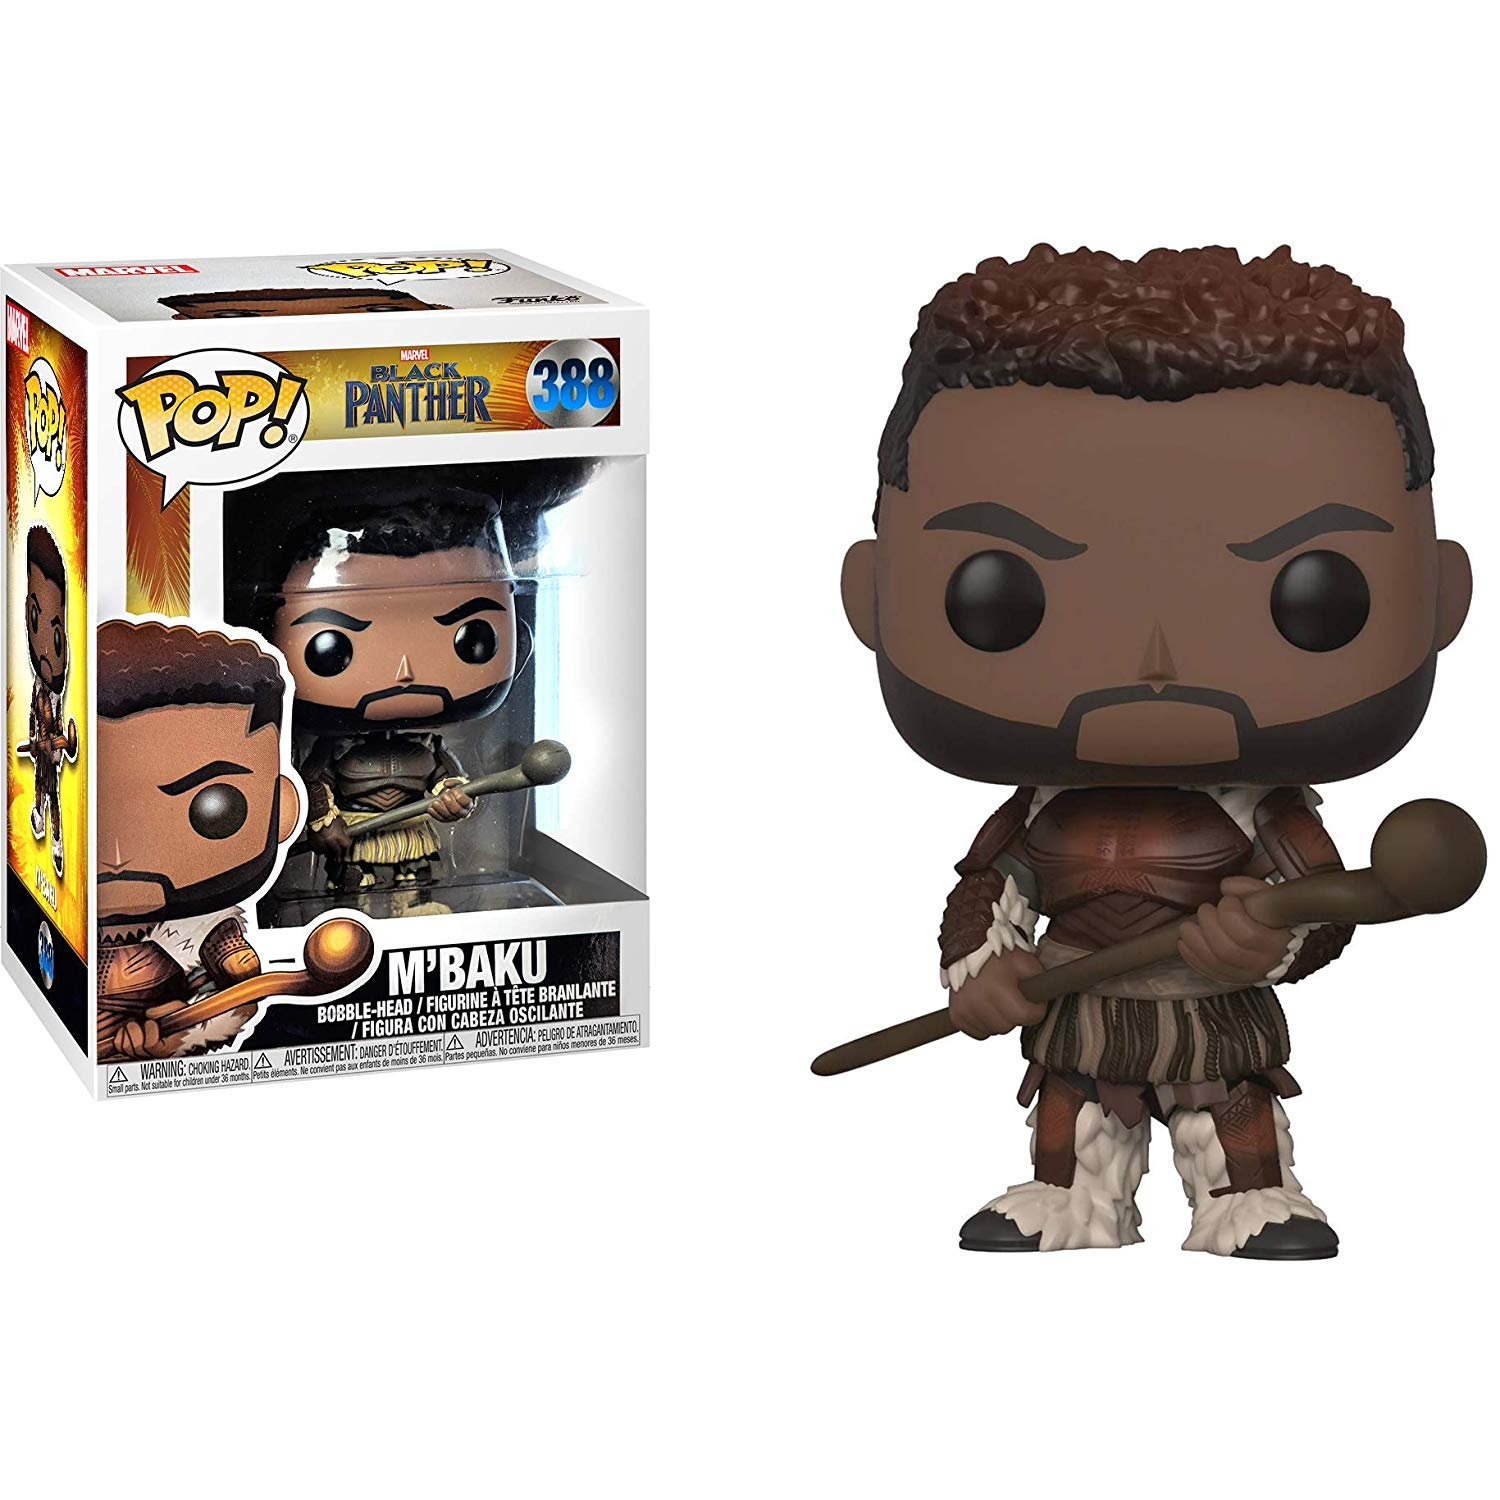 Funko Black Panther MBaku Pop Figure Bundle with Protector Case /& 1 Marvel Trading Card